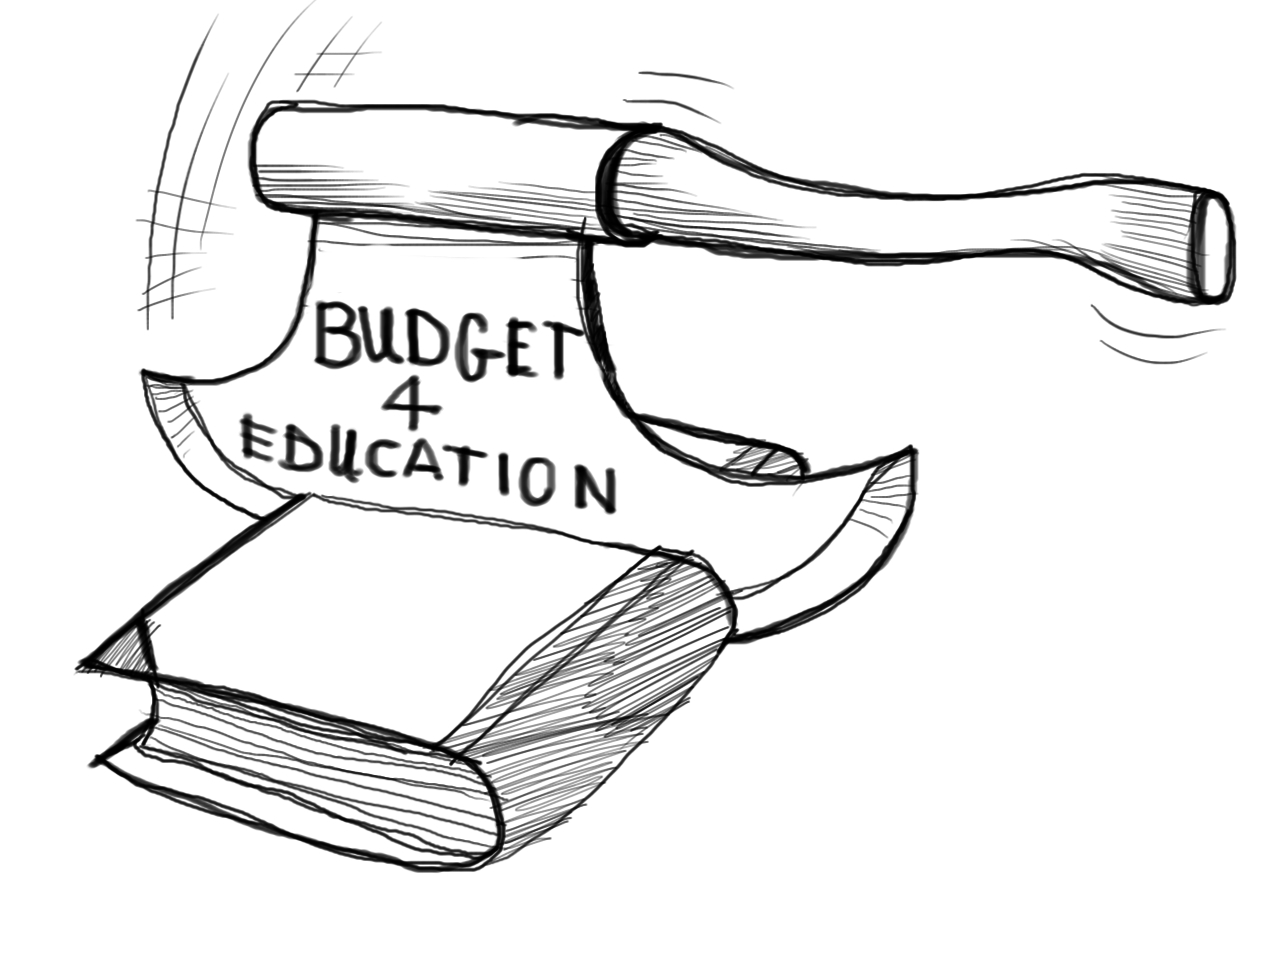 flaws of education system in i education budget cuts